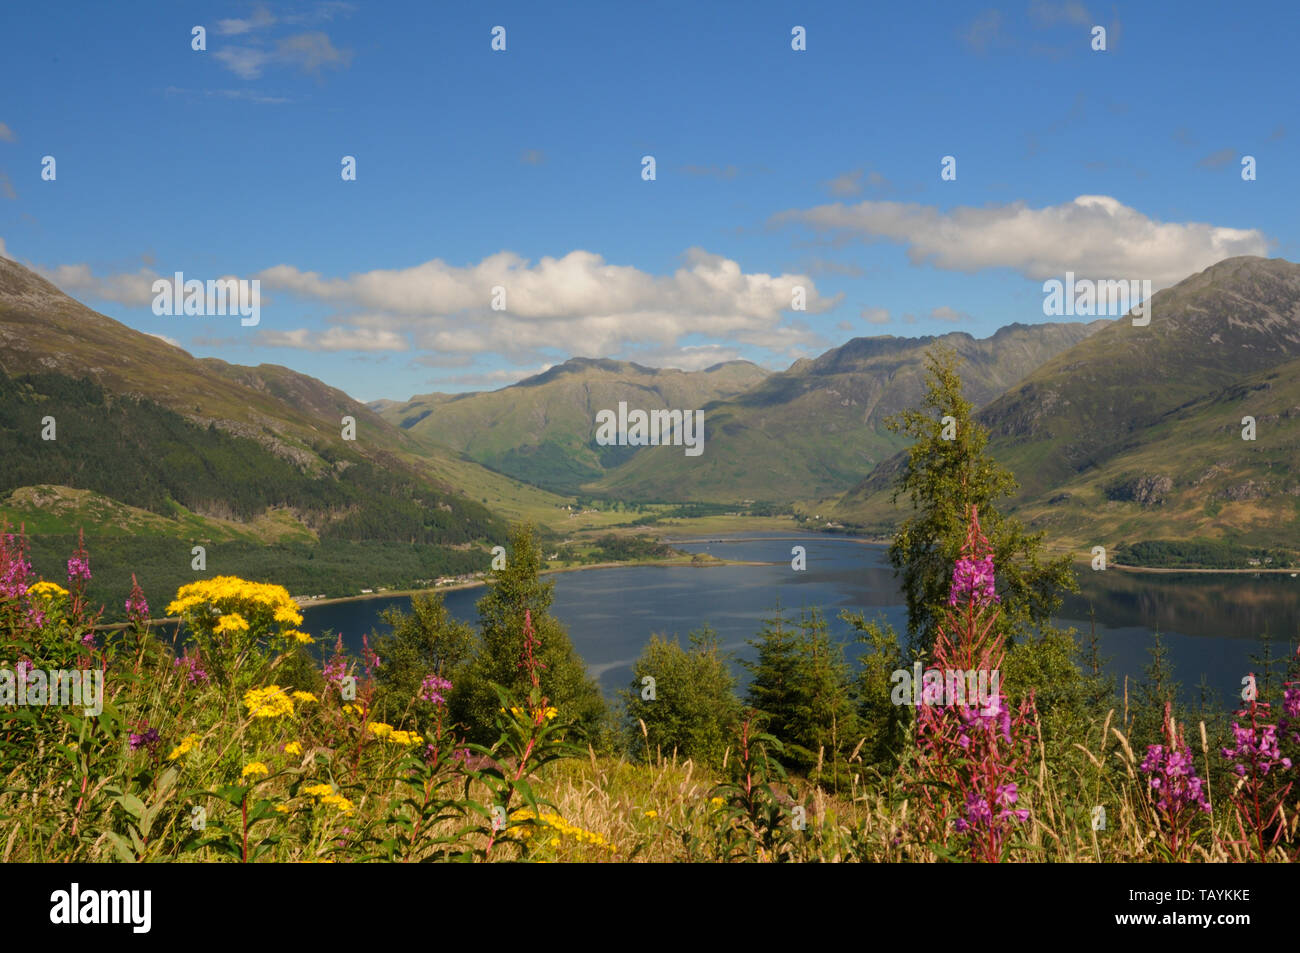 View of Loch Duich and the Five Sisters of Kintail mountain range, Ross and Cromarty, Scotland Stock Photo